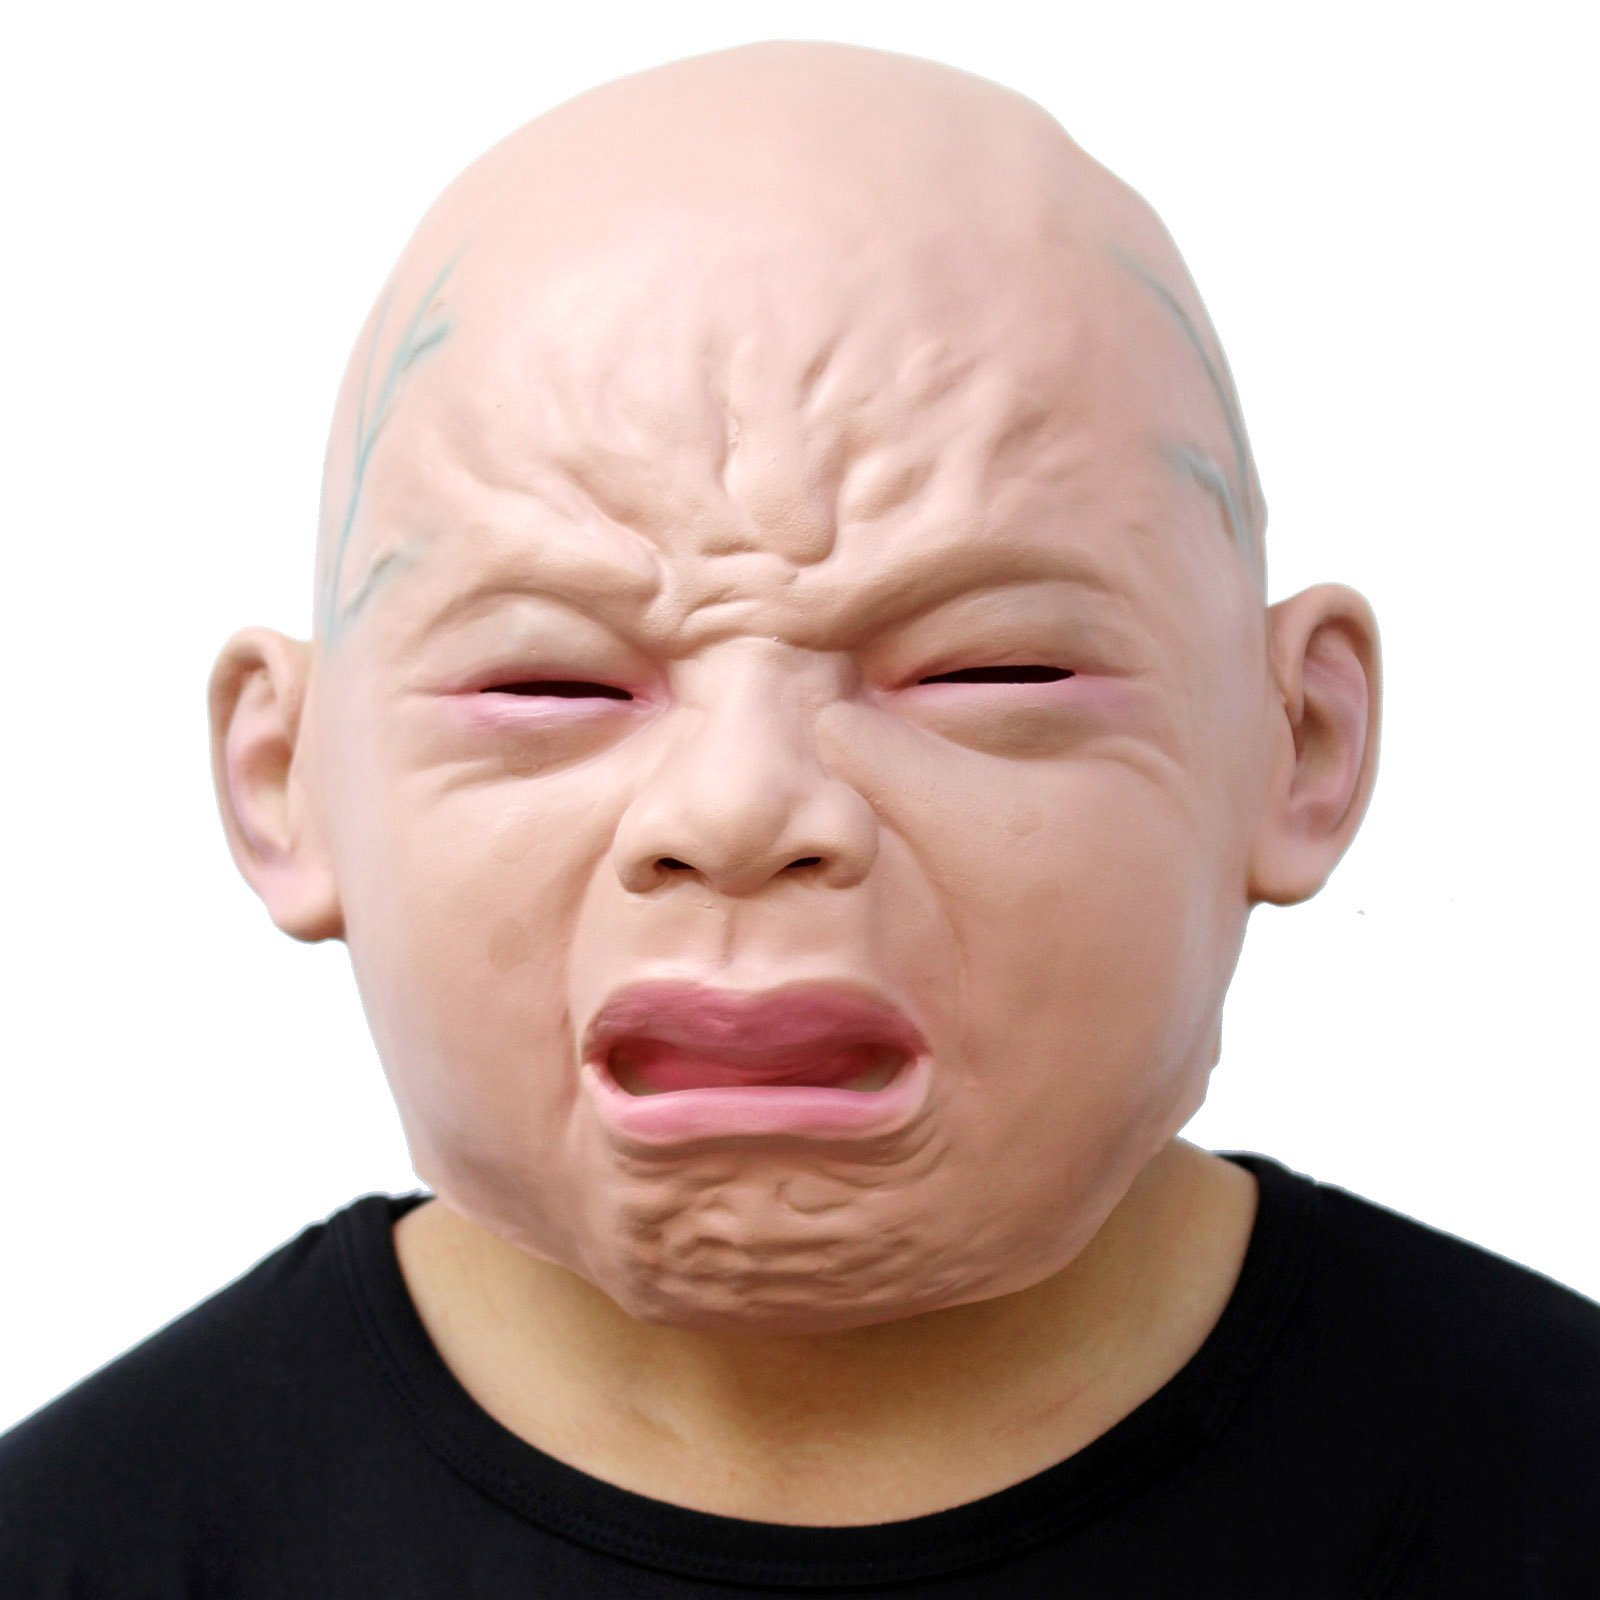 CreepyParty Novelty Halloween Costume Party Latex Head Mask Baby Face (Cry Baby) (Cry Baby) by Creepy Party